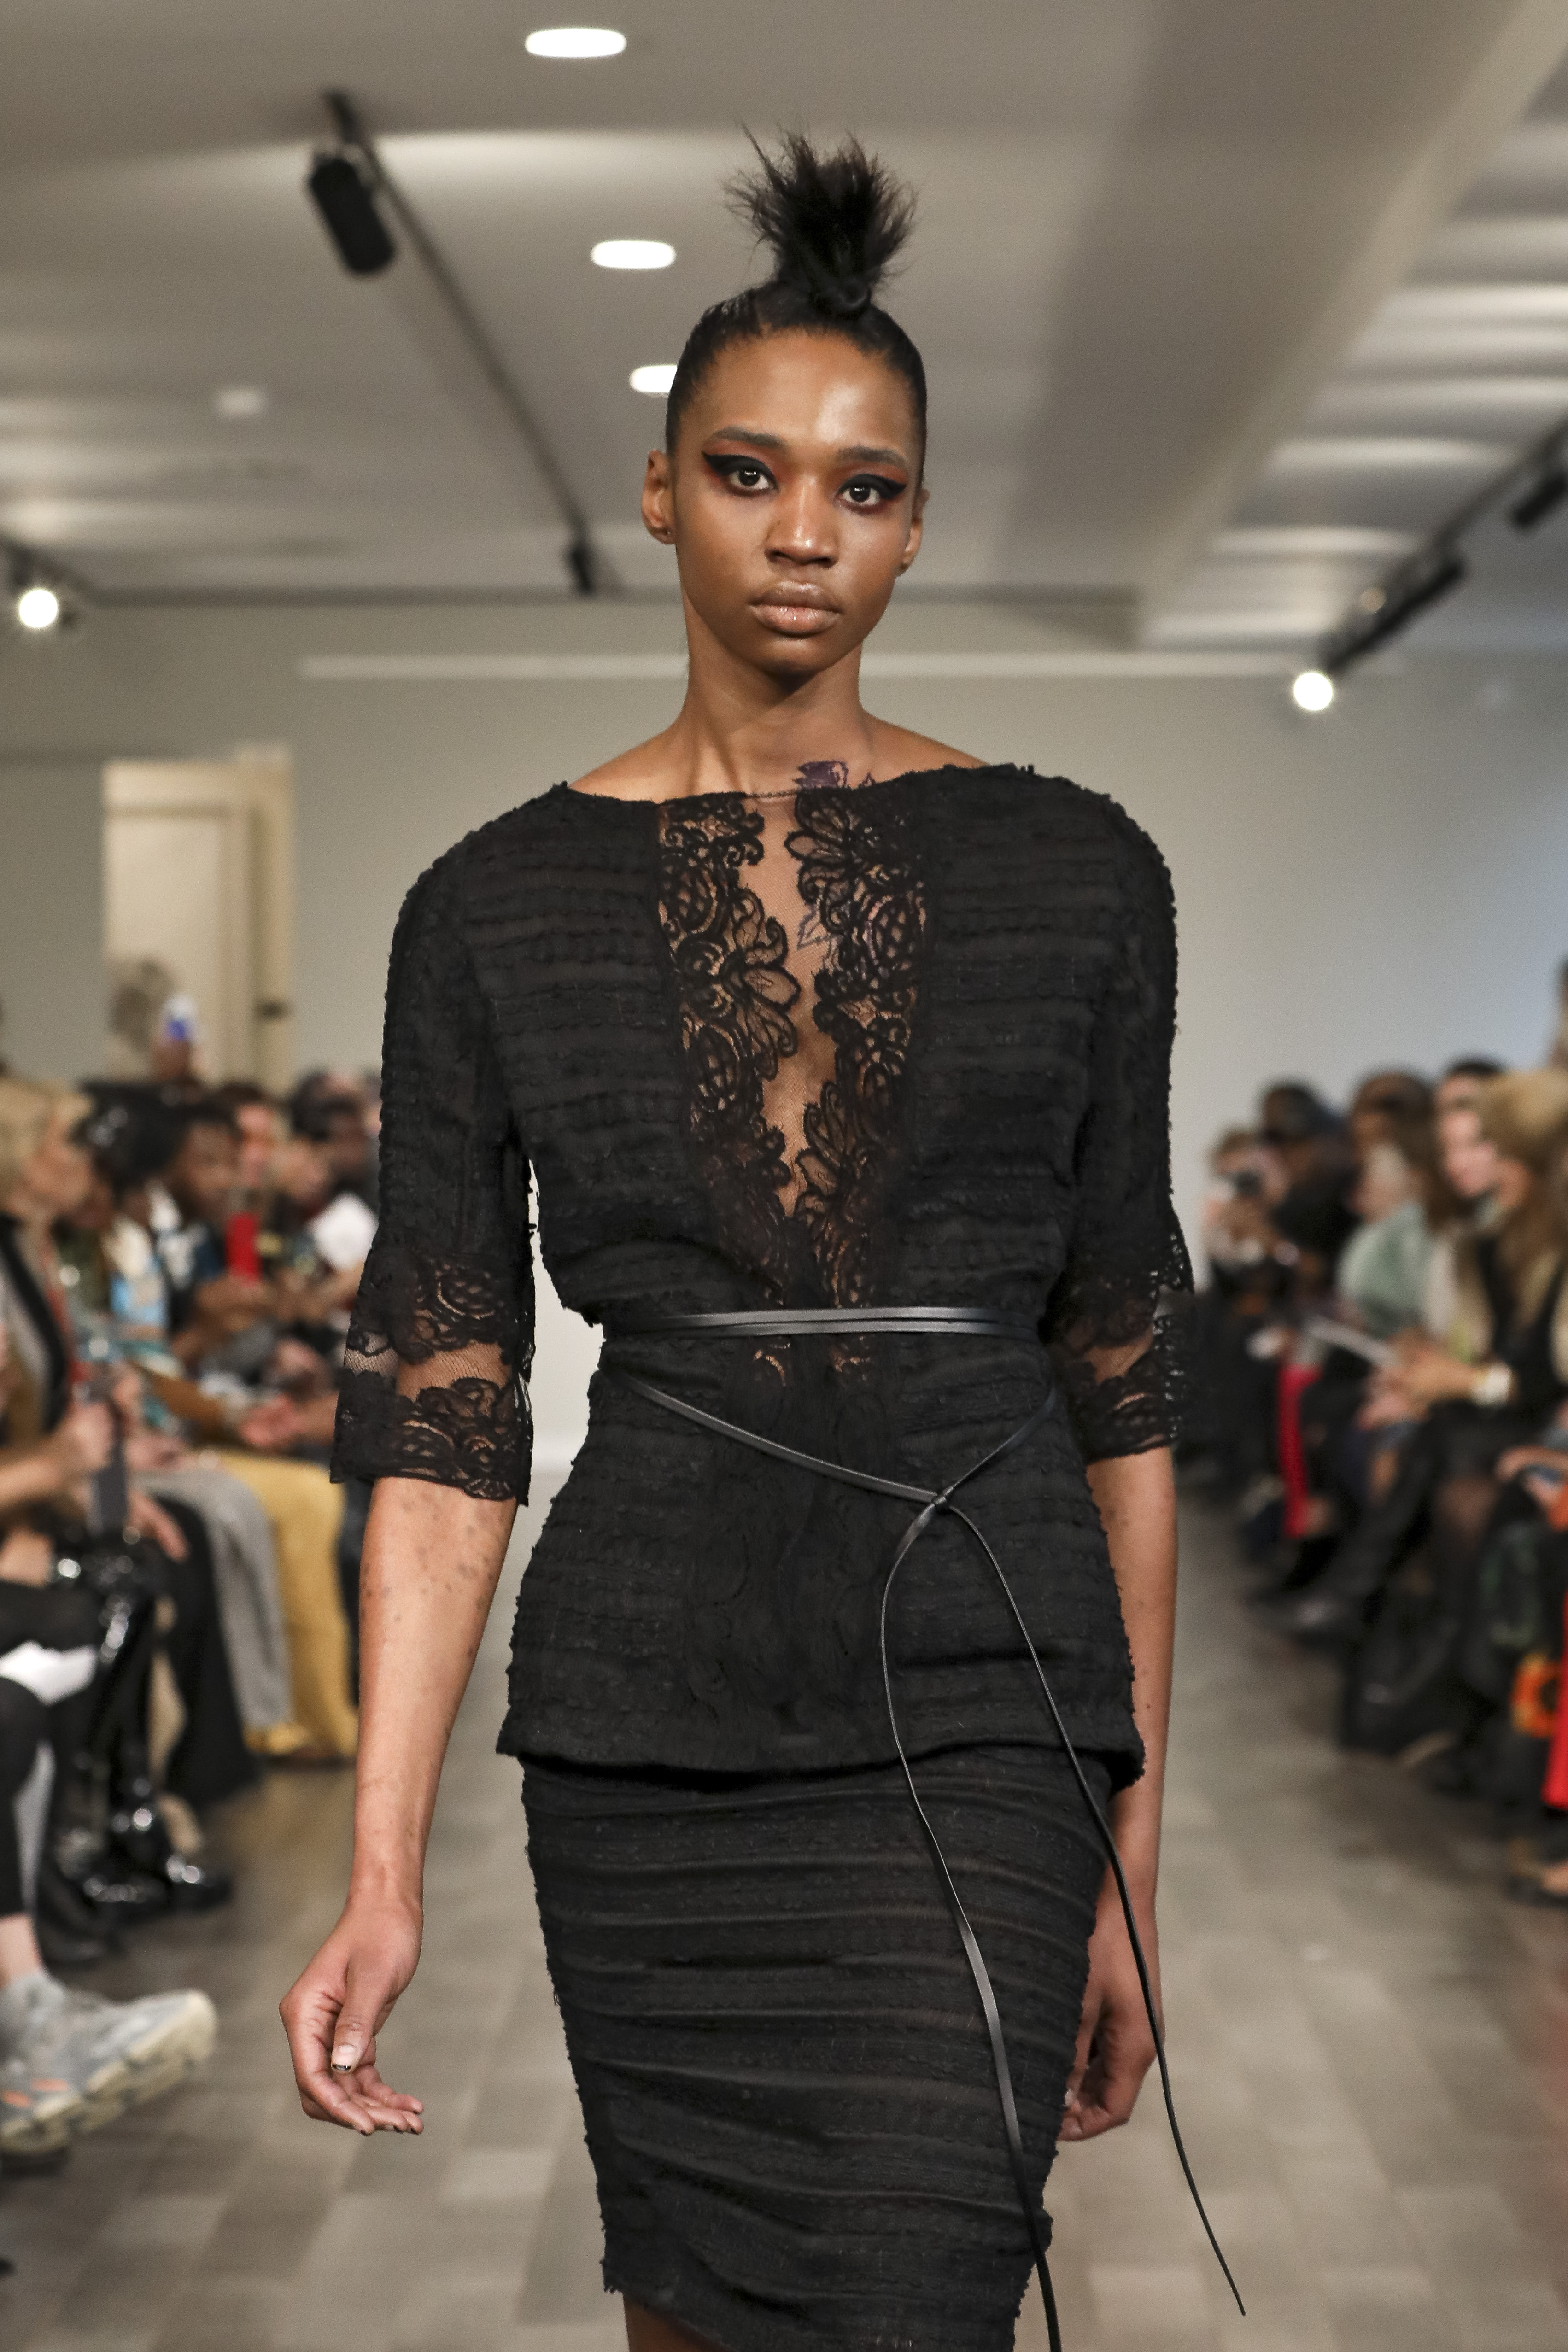 Frederick Anderson Collection Fall 2020